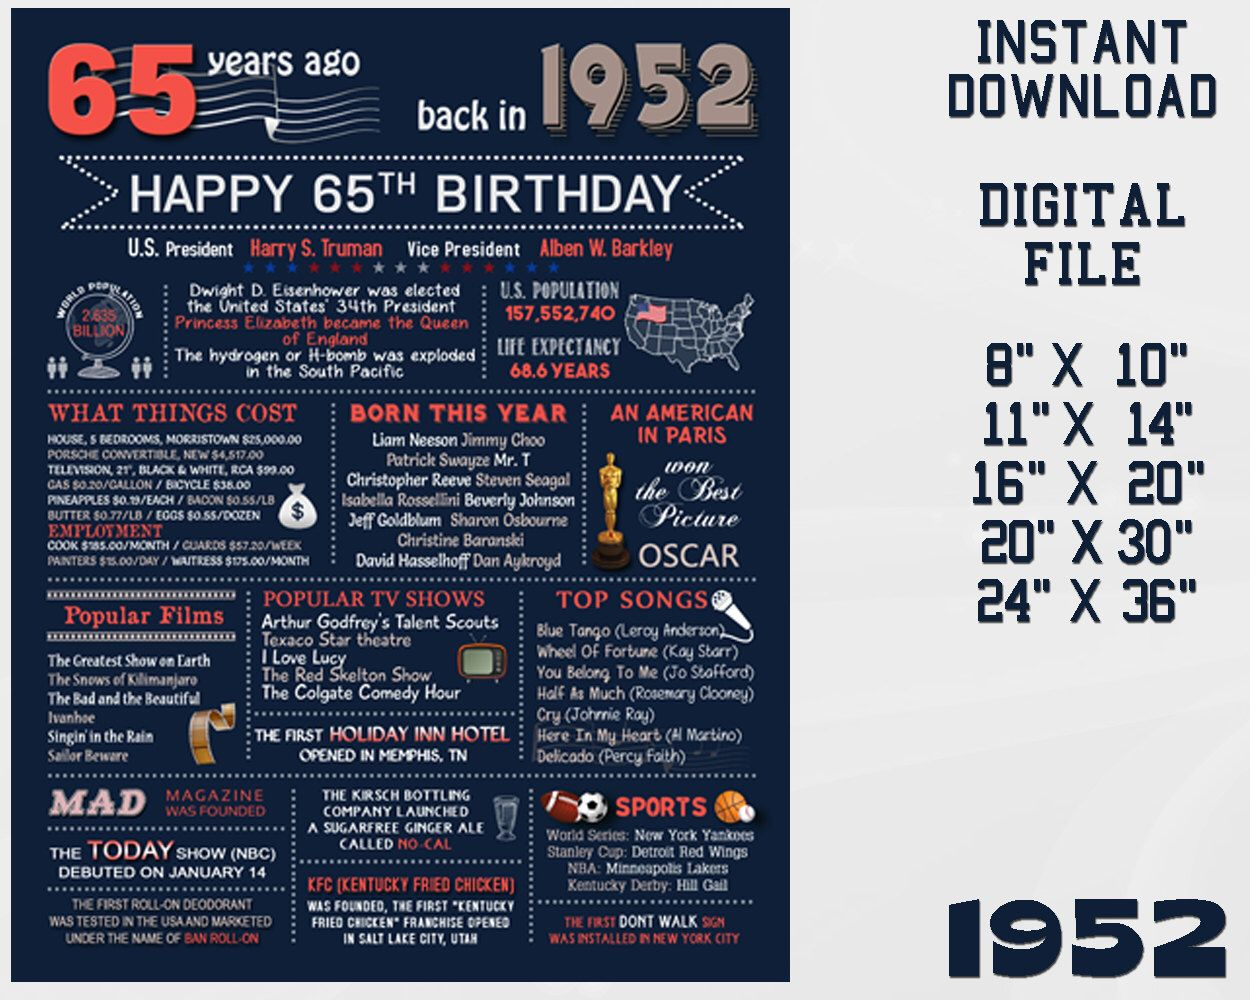 Download 65th birthday card turning 65 happy 65th birthday friend - 65th Birthday Sign Dark Navy Background Usa Events 1952 Printable Poster Happy